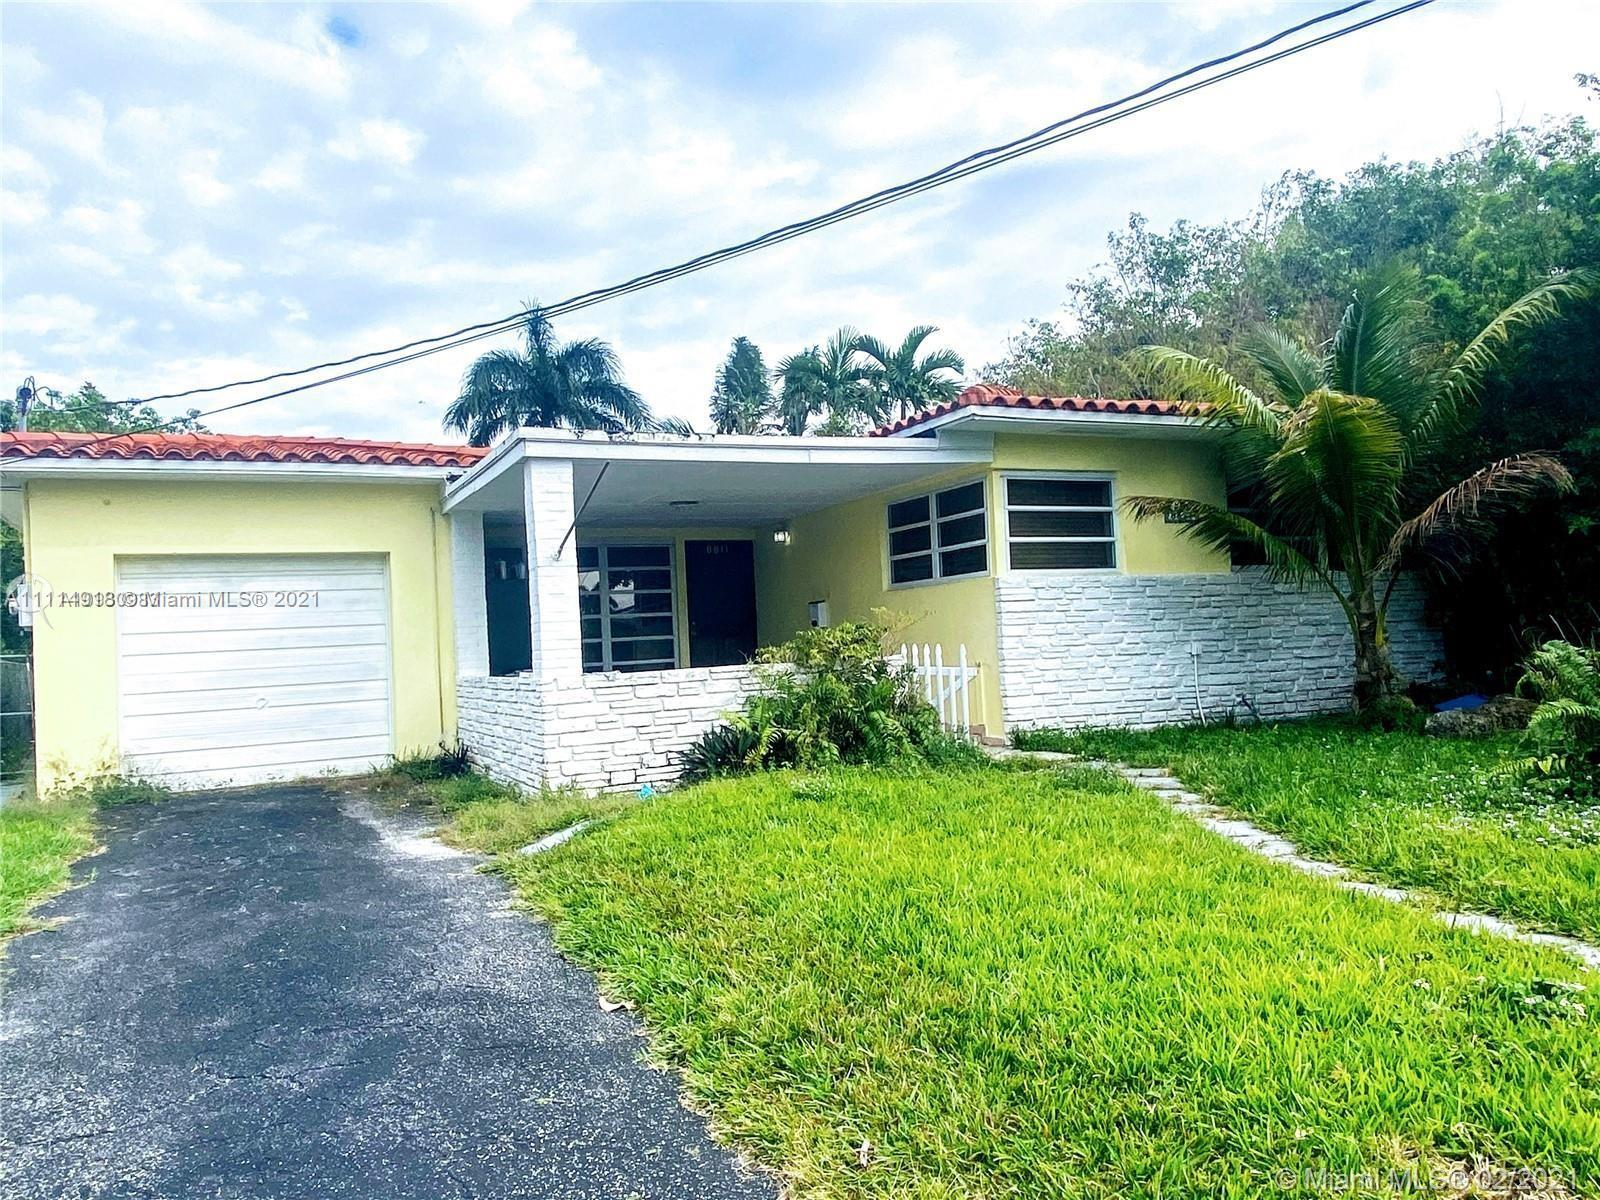 A rarity in Surfside 4 bedrooms and 3 baths. The enormous family room could be easily coveretd to a